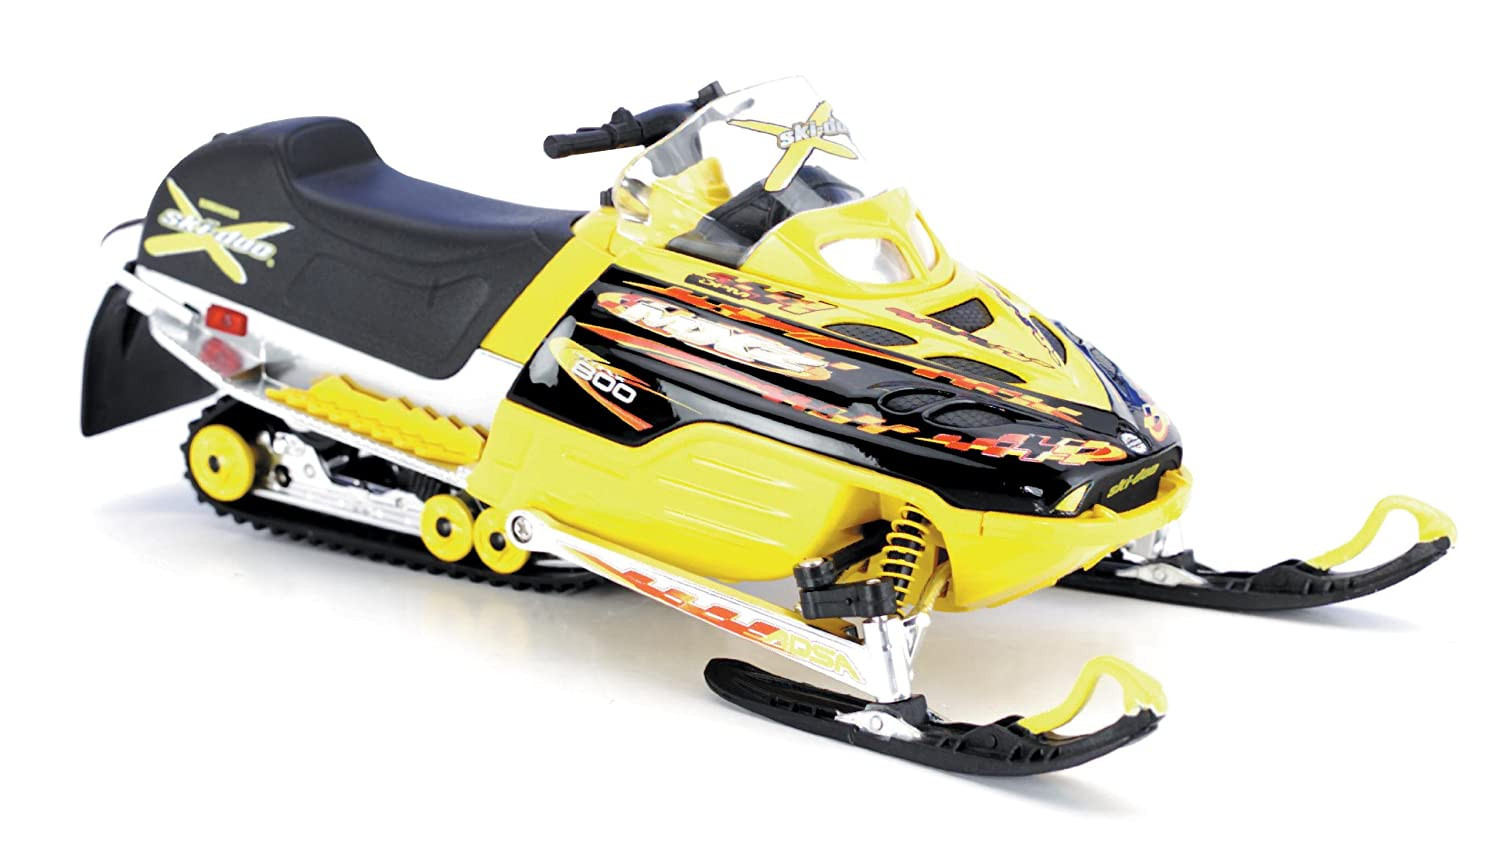 Ski-Doo RC Snowmobile